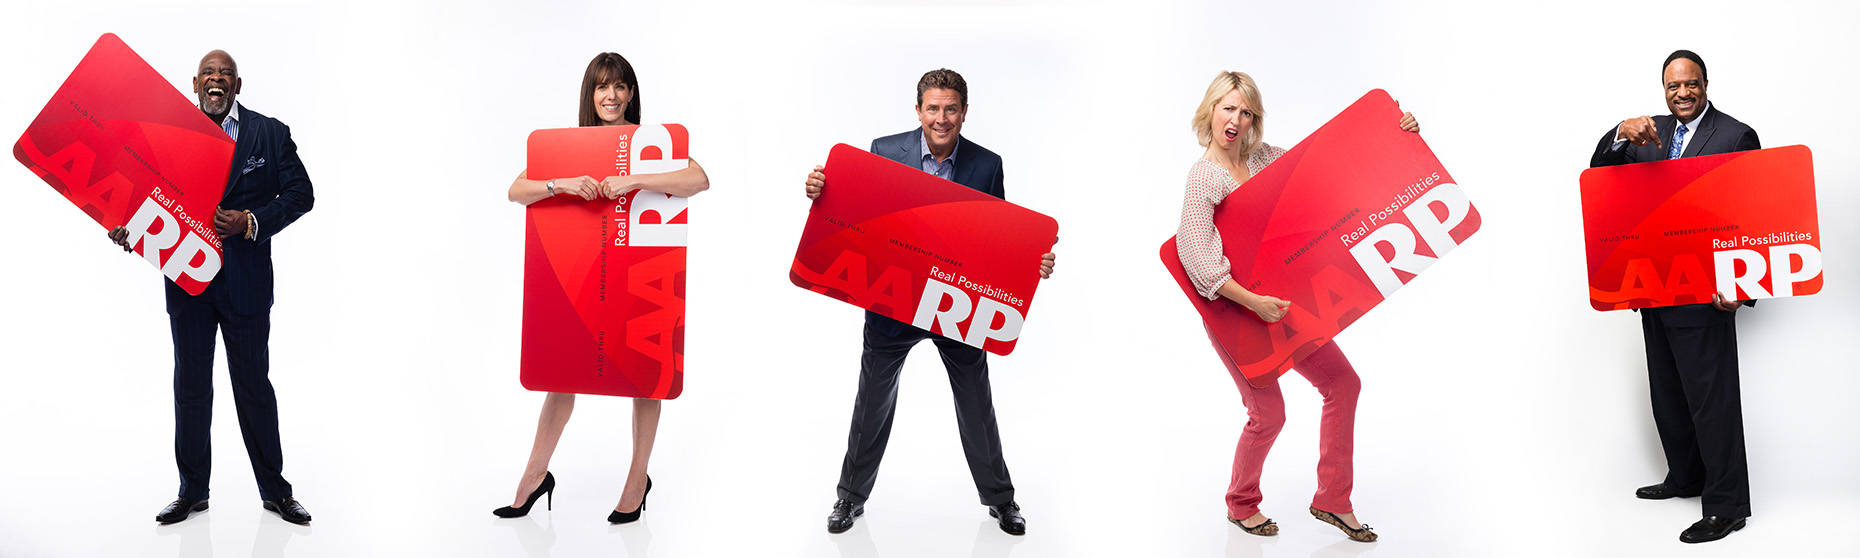 AARP  Chris Gardner  , Jean Chatzky, Dan Marino, Samantha Brown, James JB Brown for AARP   • Jason Grow Photography